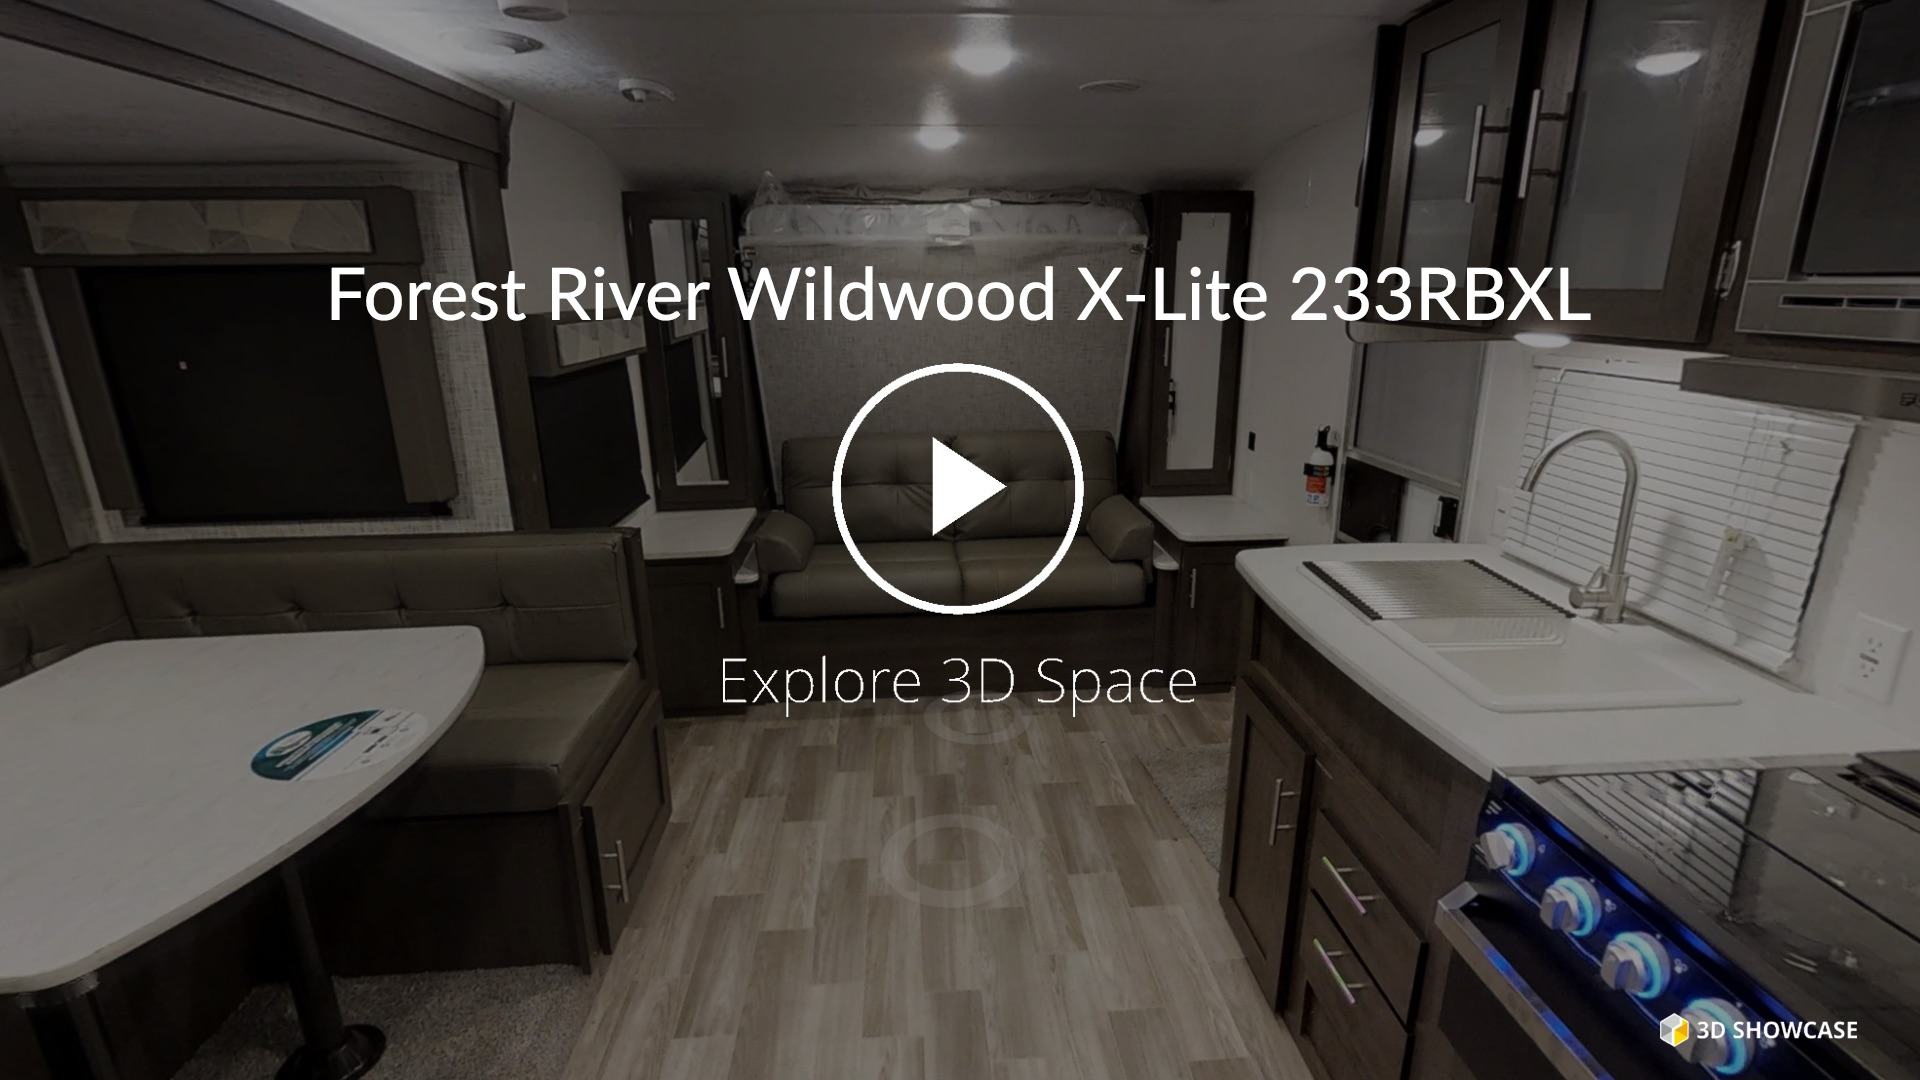 Forest River Wildwood X-Lite 233RBXL